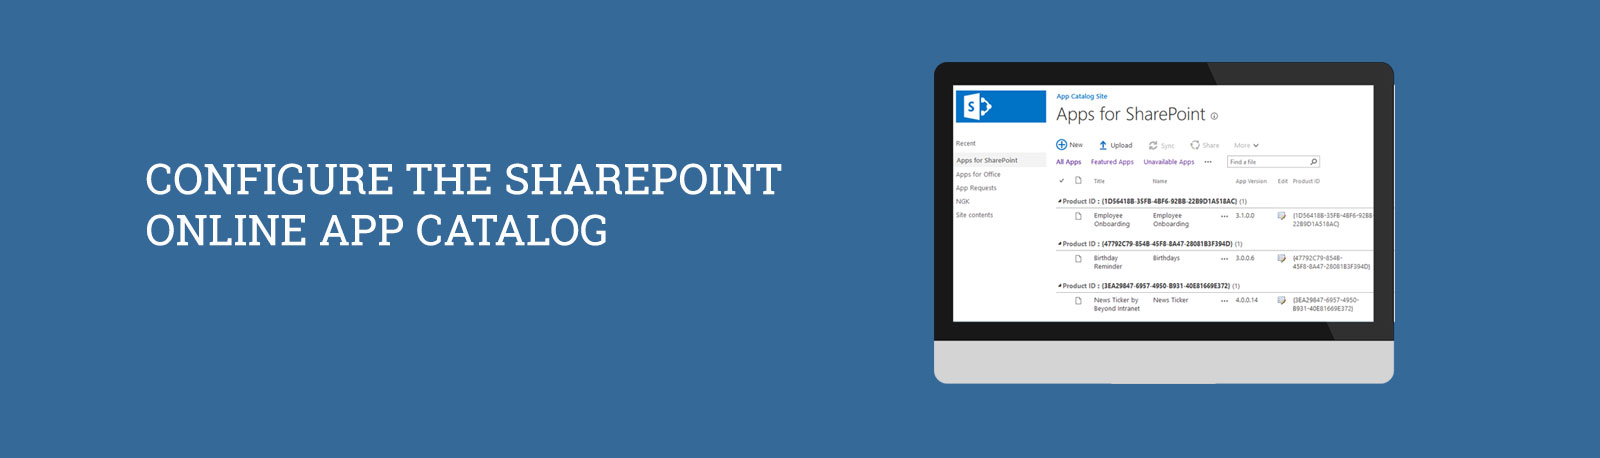 SharePoint Configuration